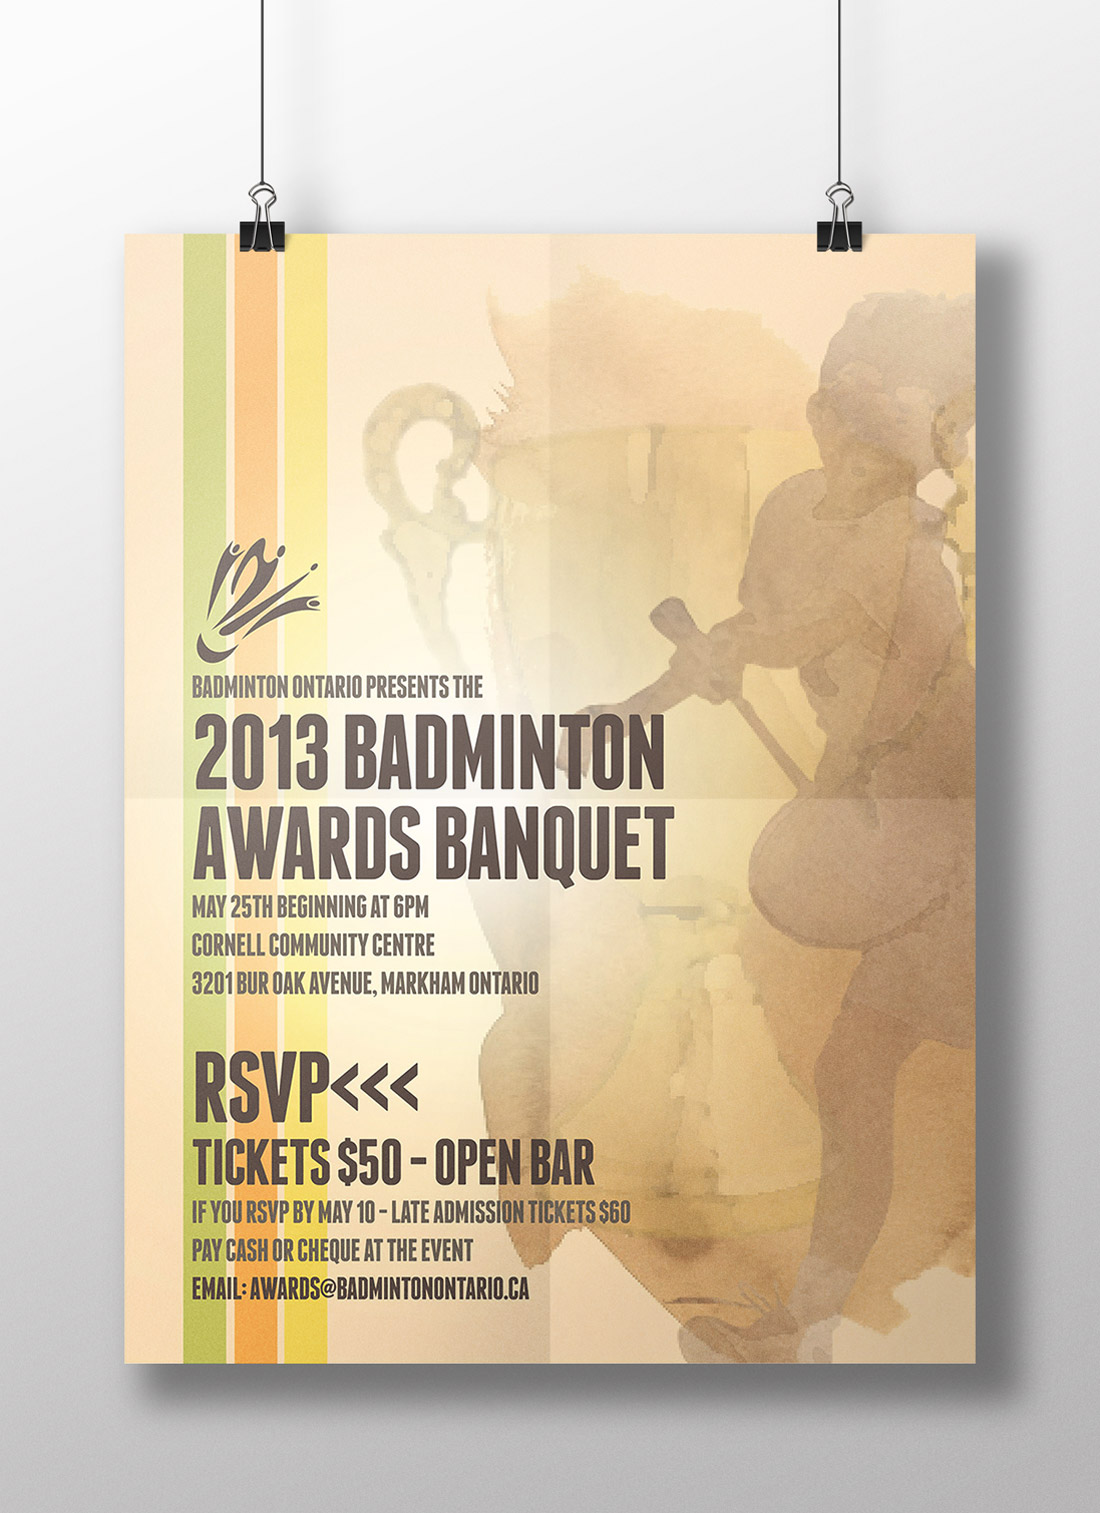 2013-Awards-Banquet-poster.jpg